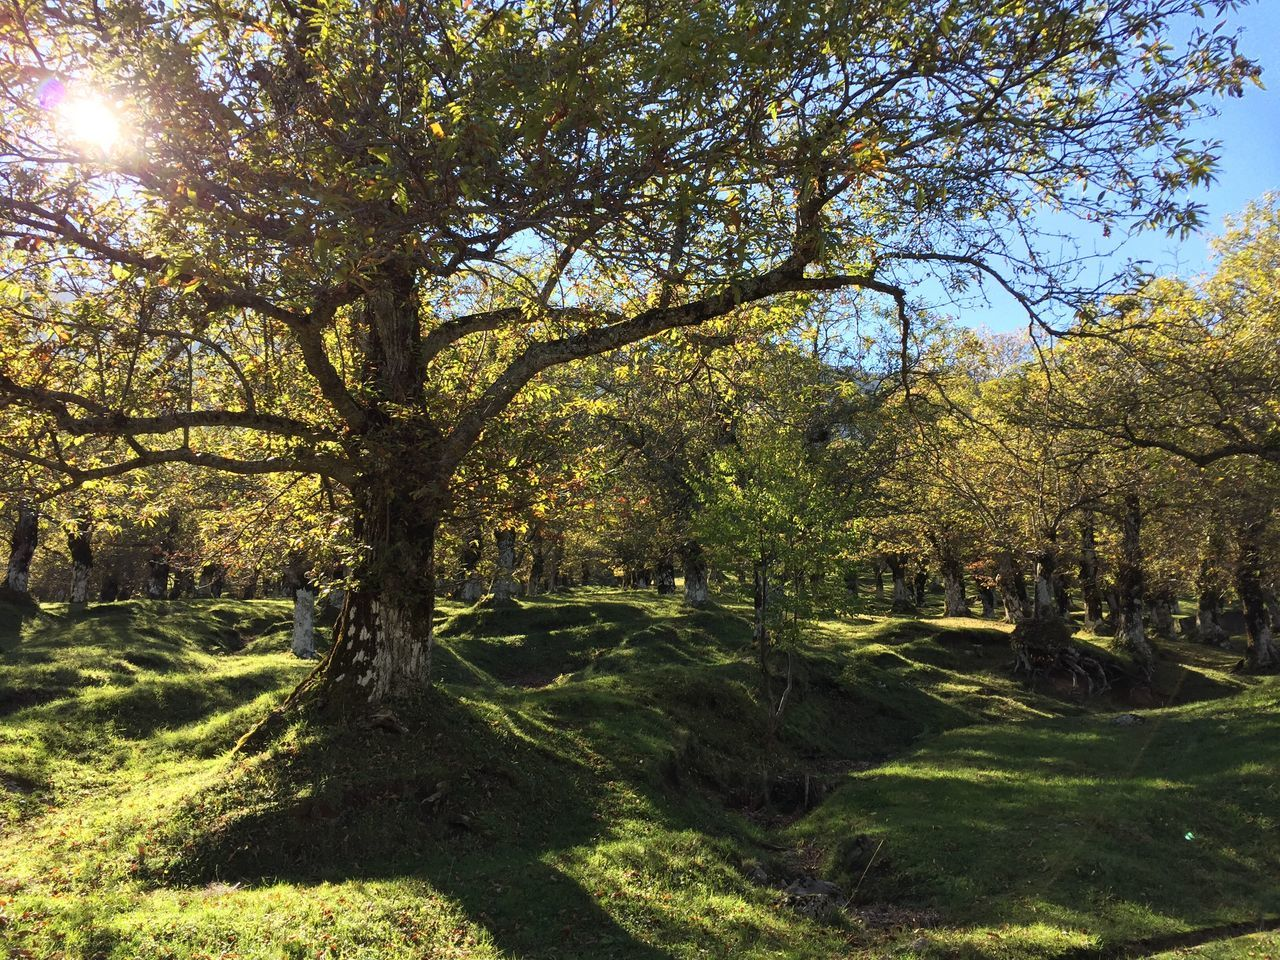 tree, tranquility, sunlight, nature, day, outdoors, beauty in nature, tranquil scene, growth, grass, scenics, no people, summer, landscape